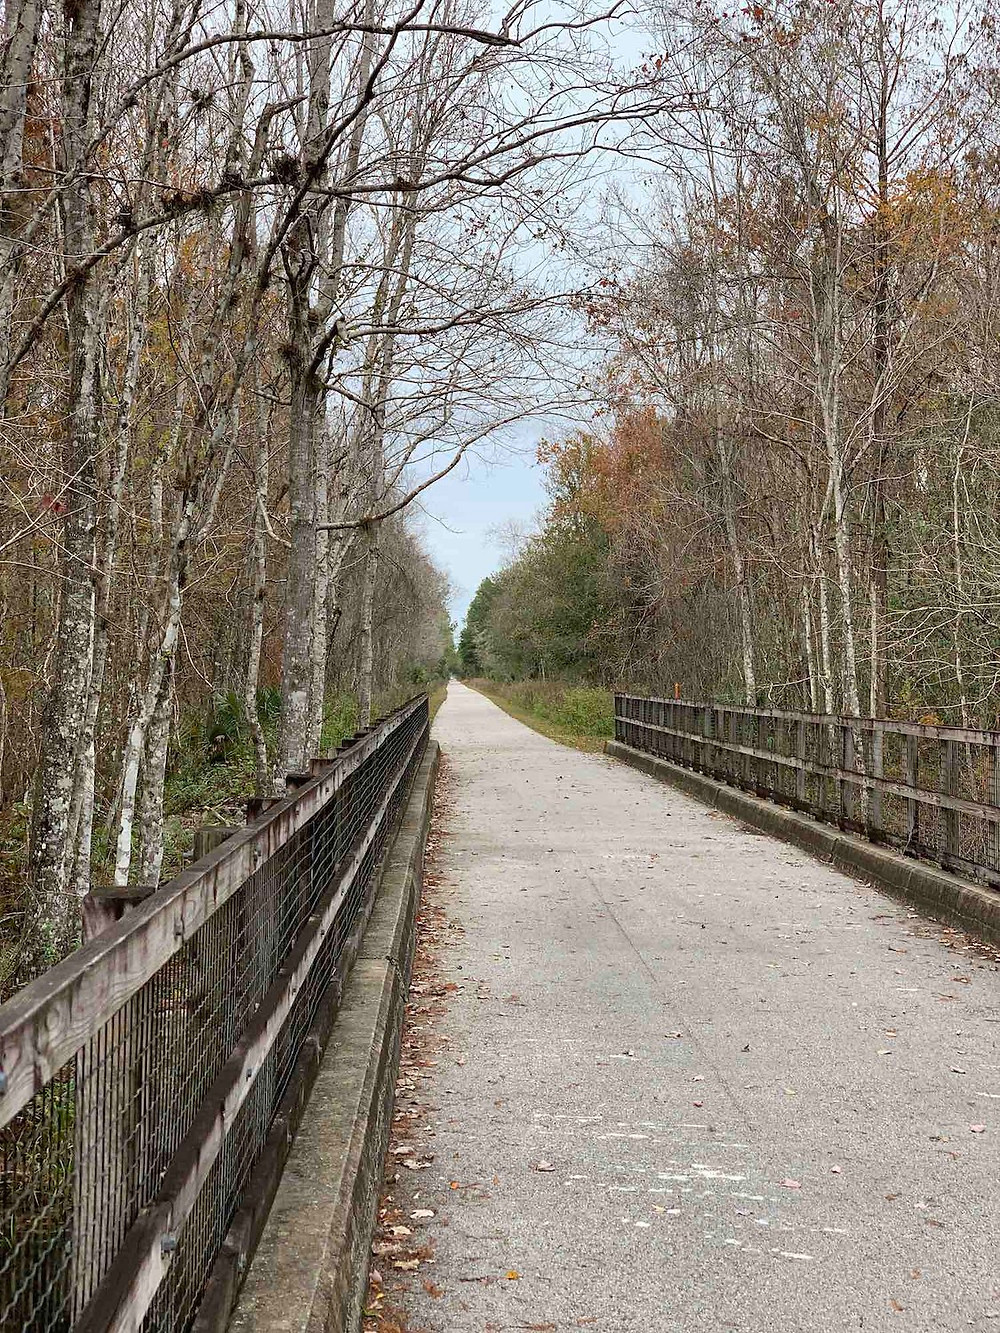 General Van Fleet State Bike Trail